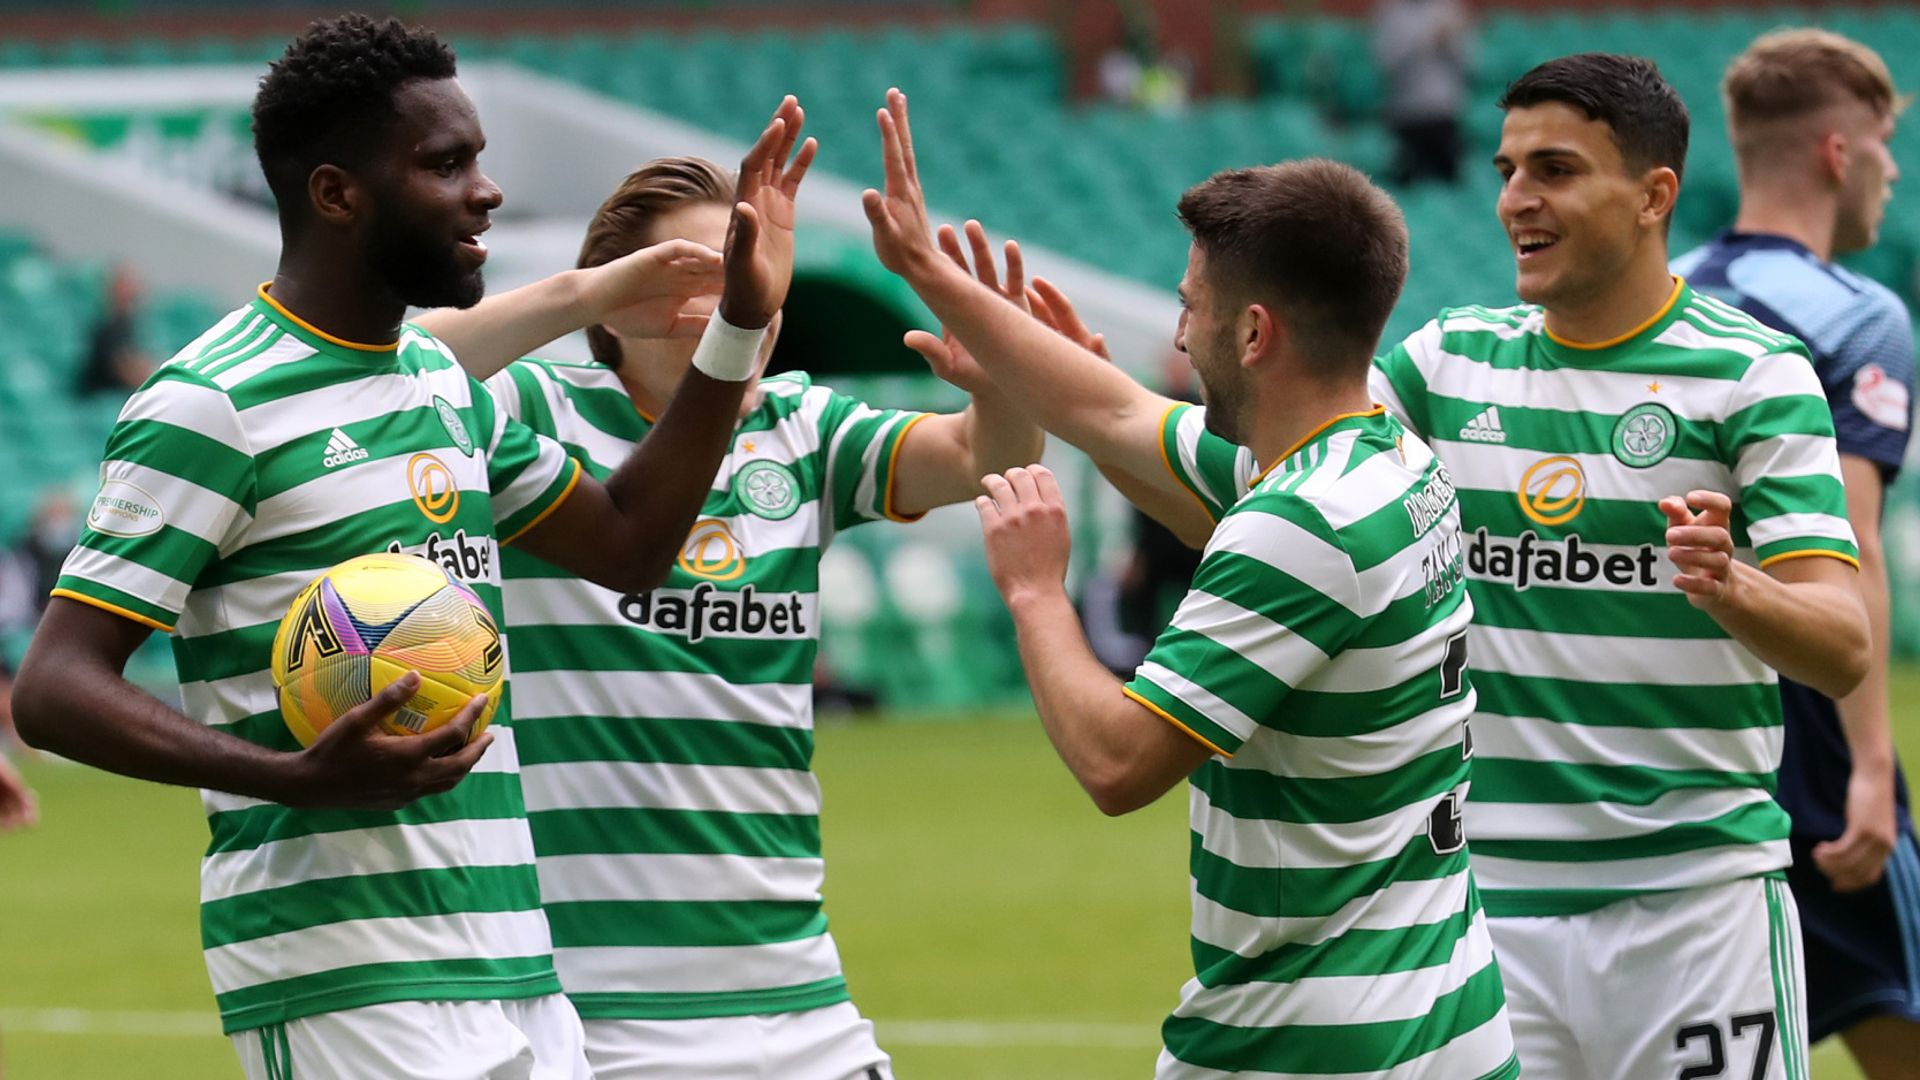 Celtic to play KR Reykjavik in CL qualifying